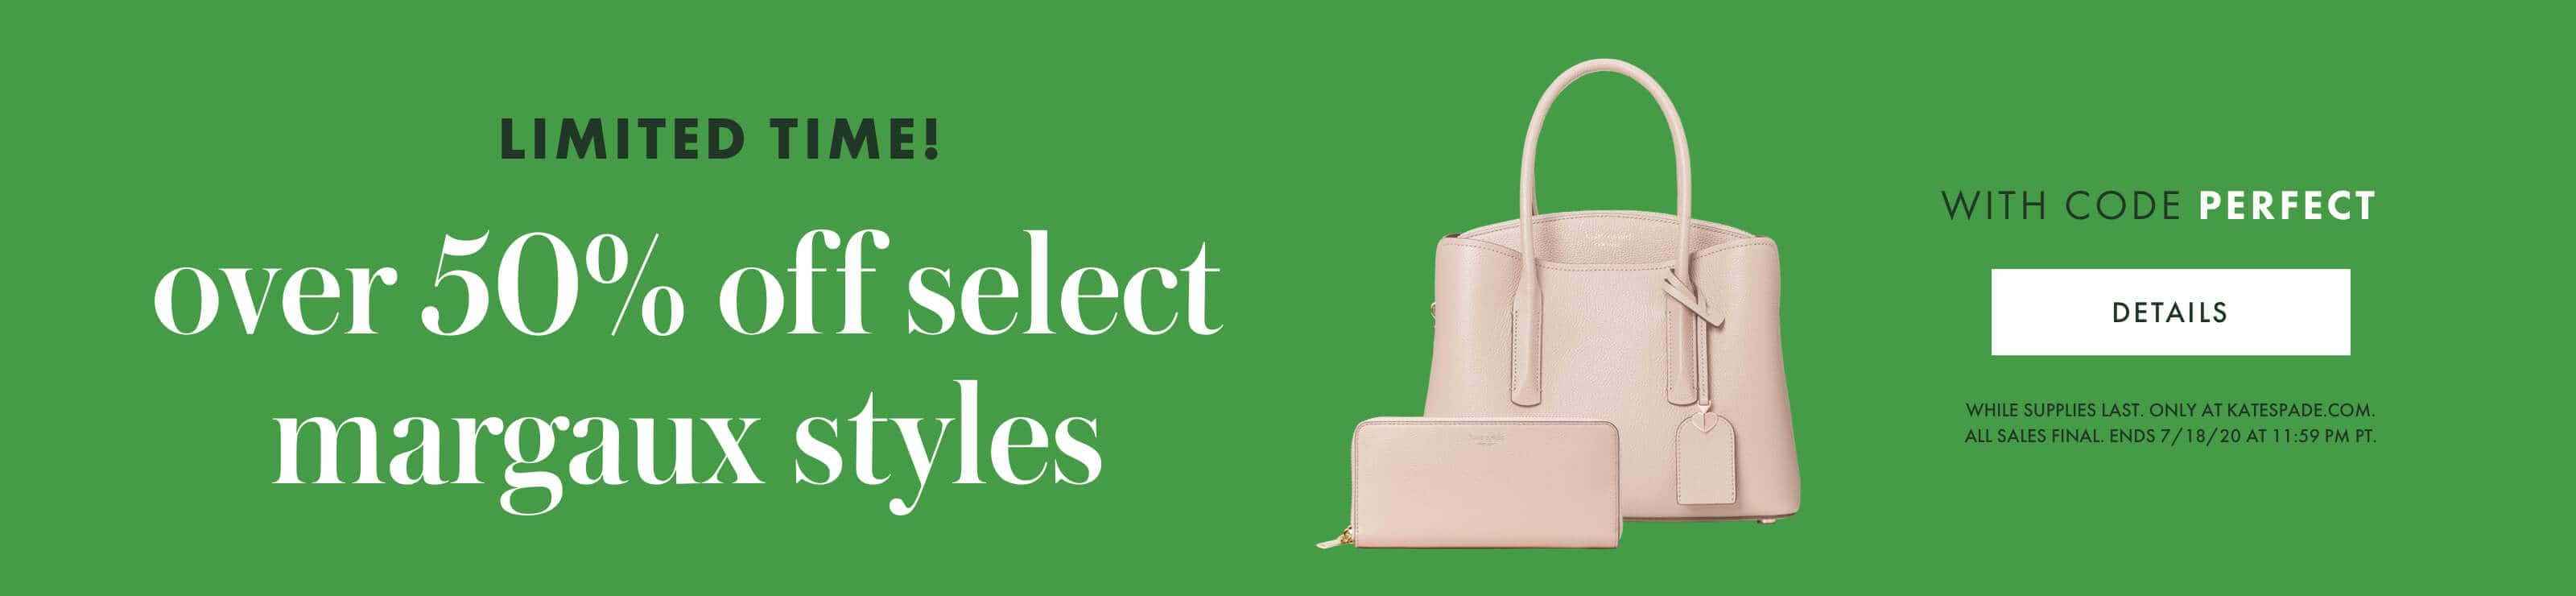 limited time! over 50% off select margaux styles WITH CODE PERFECT. details. while supplies last. only at katespade.com.